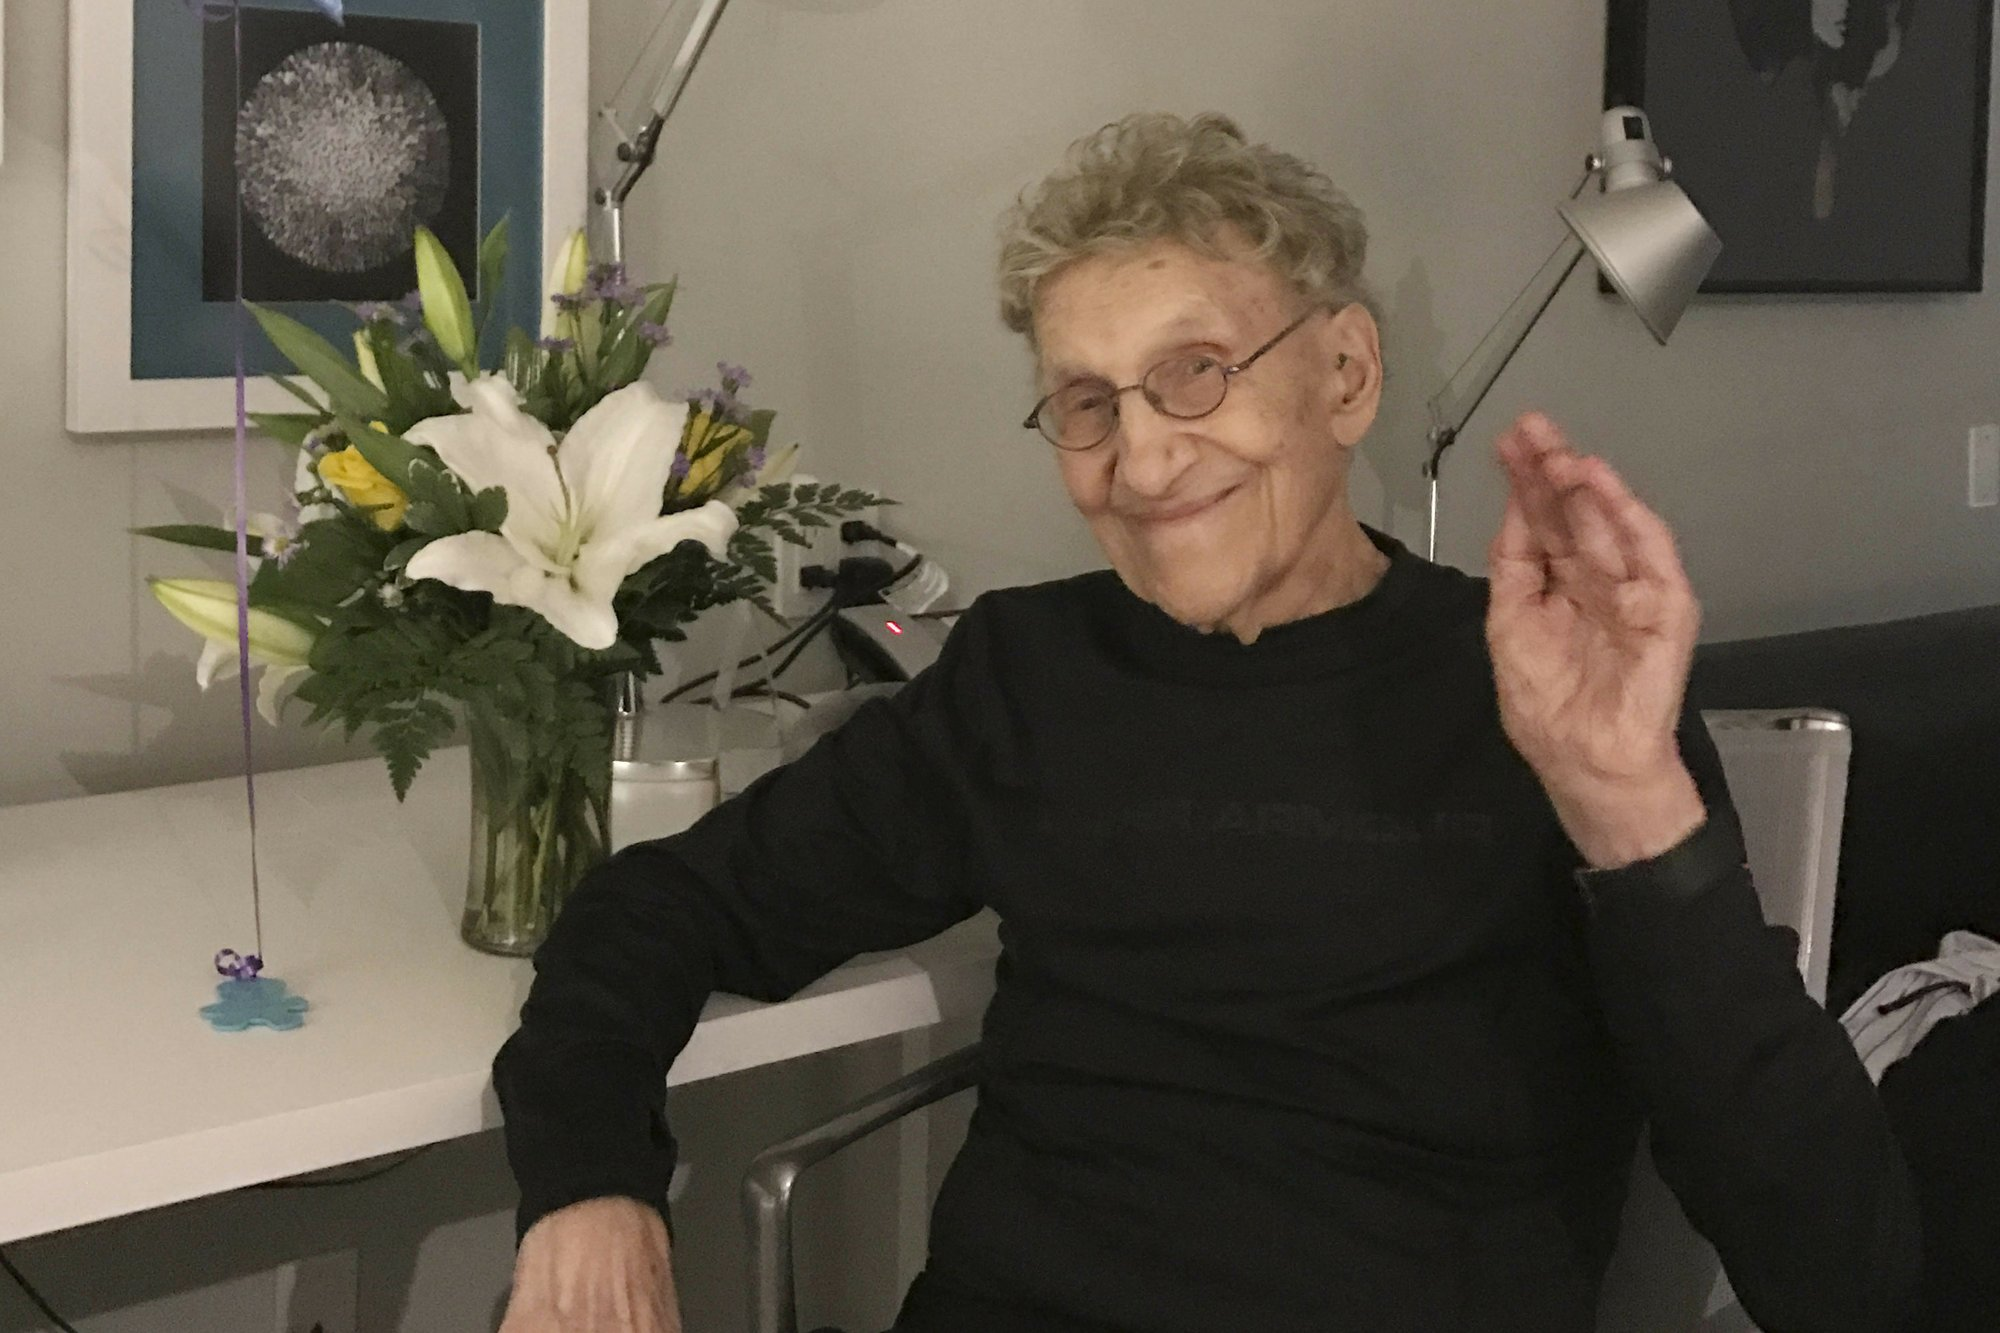 Actor-comedian Sammy Shore, father of Pauly, dies at 92_1558255462962.jpeg.jpg